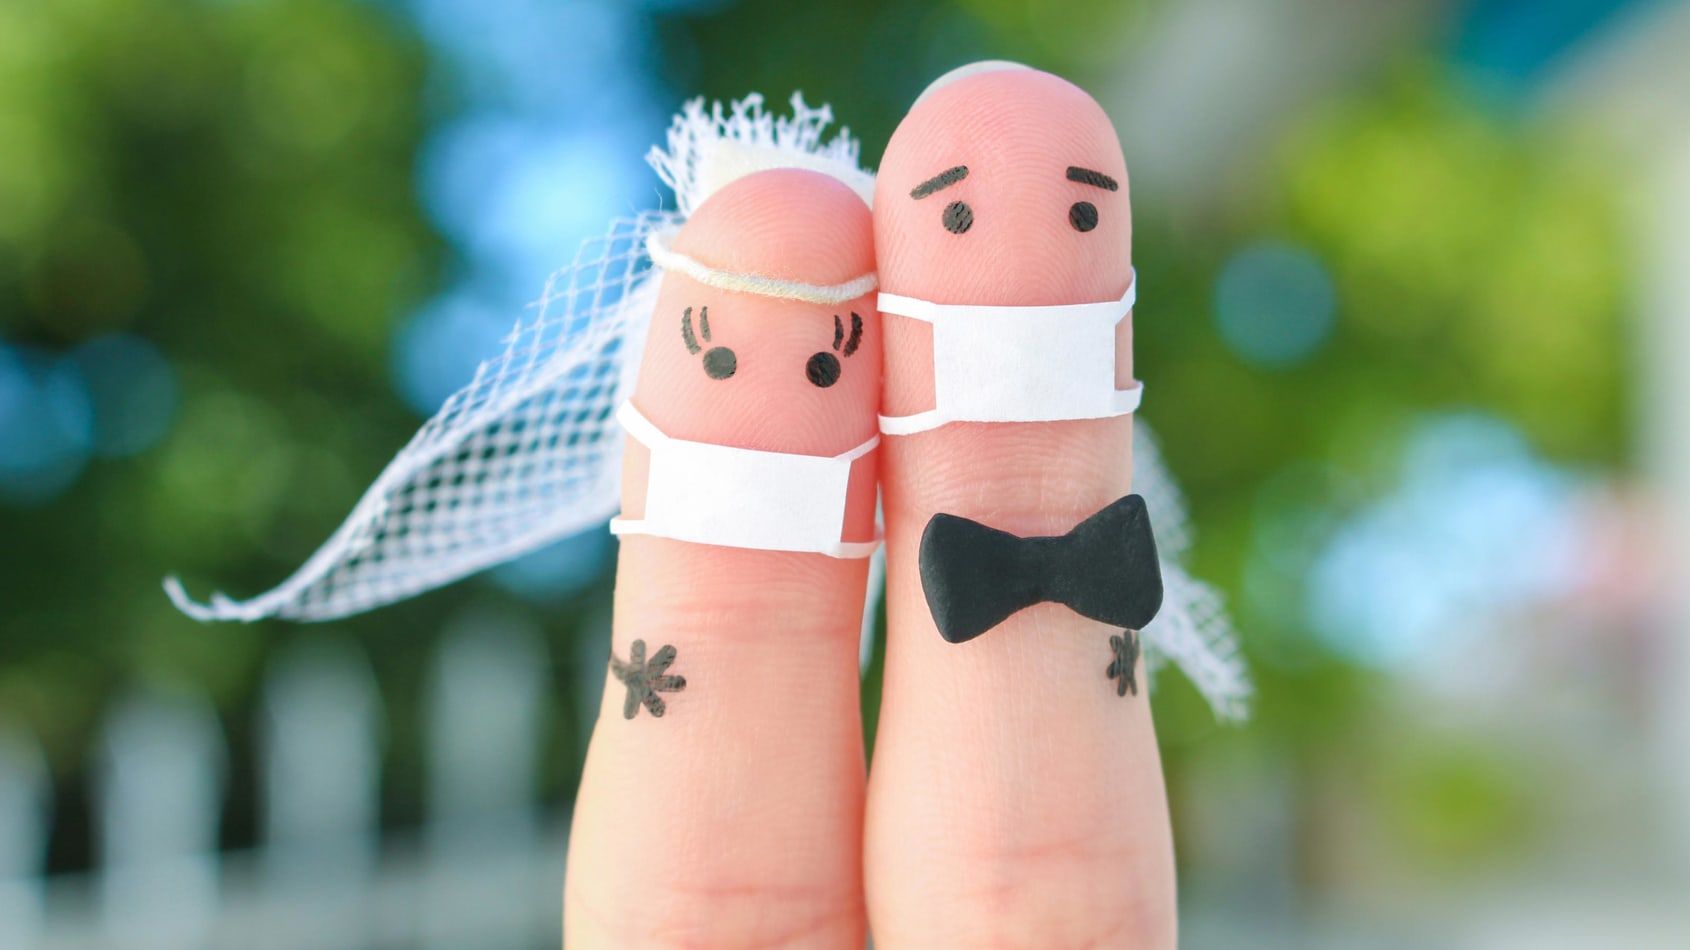 Two pointer fingers with drawn on faces getting married. Both are wearing masks.